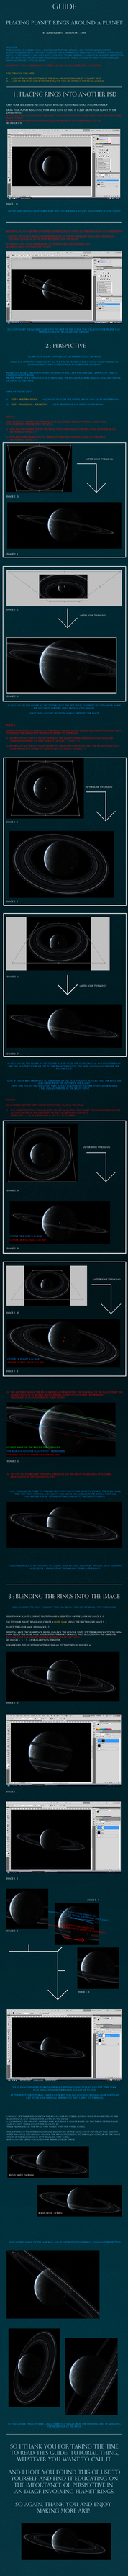 Guide - Placing Rings Into An Image